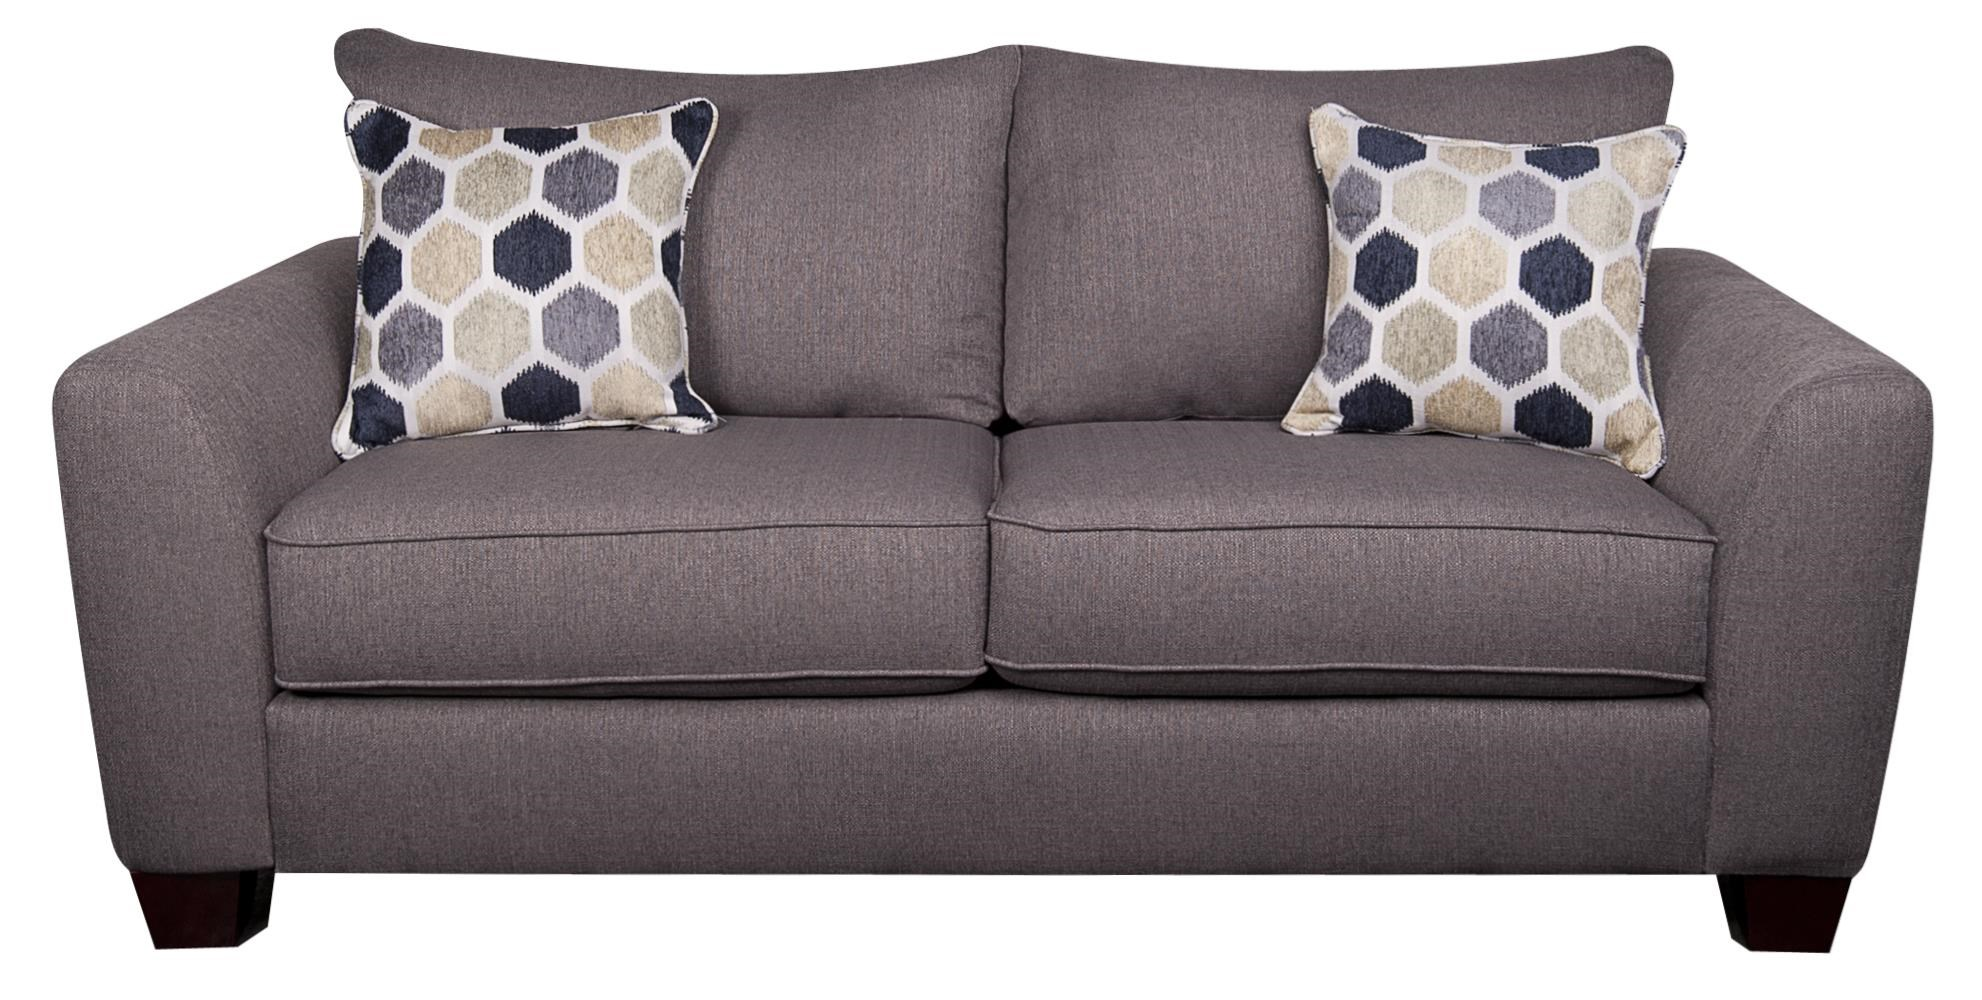 Morris Home Furnishings Remedy Remedy Loveseat - Item Number: 507989214